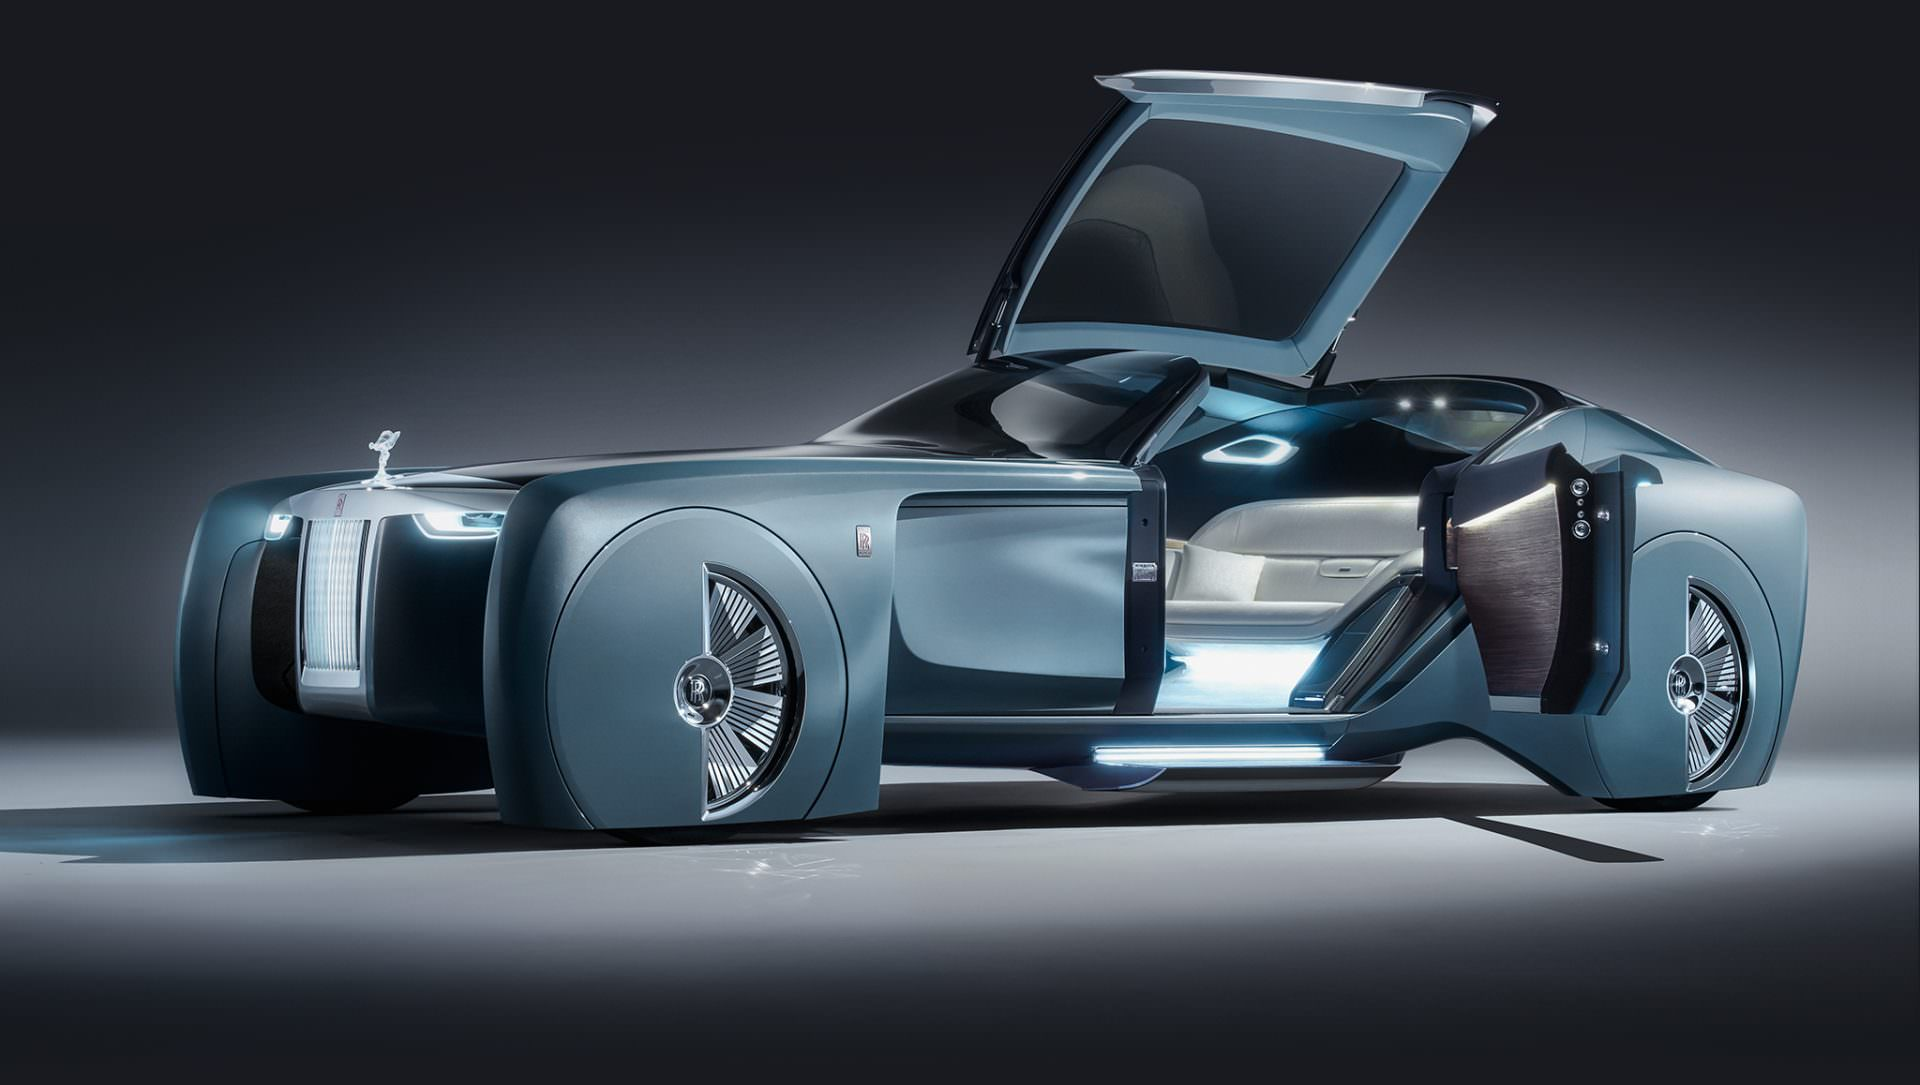 rolls-royce-next-100-concept-car-3